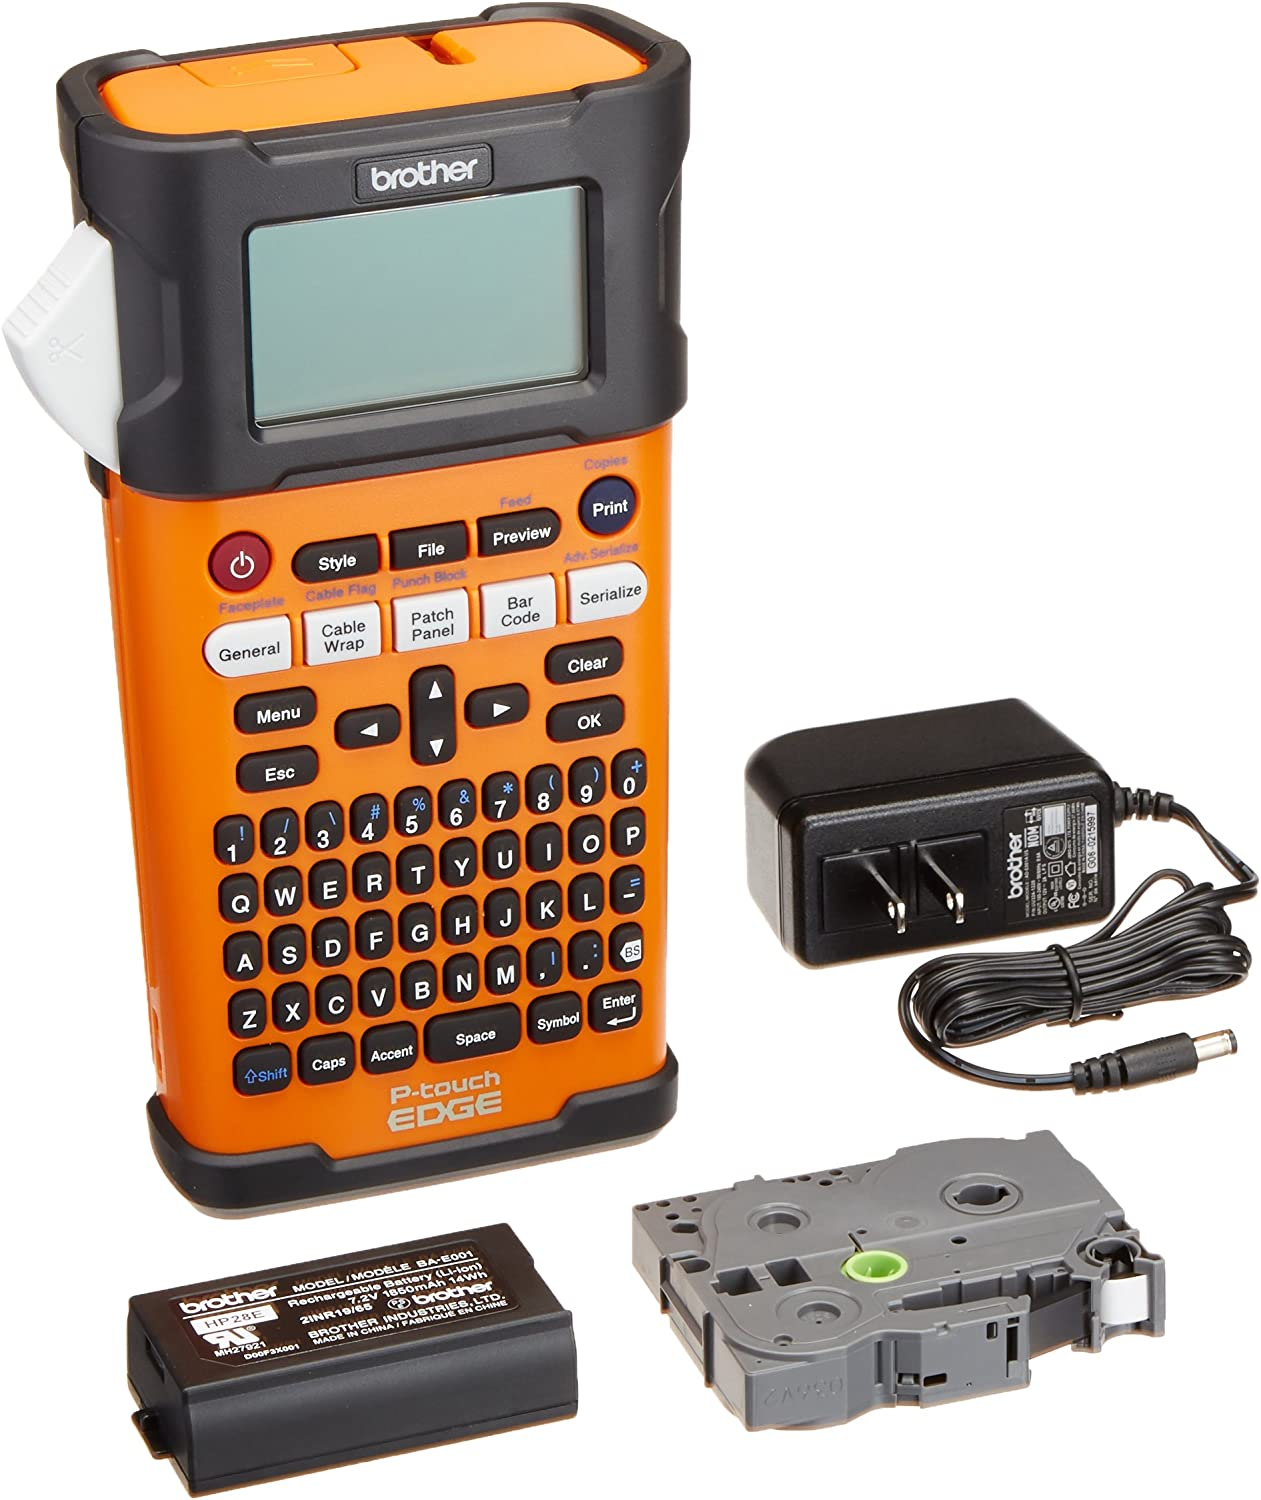 Brother Industrial Handheld Labeling